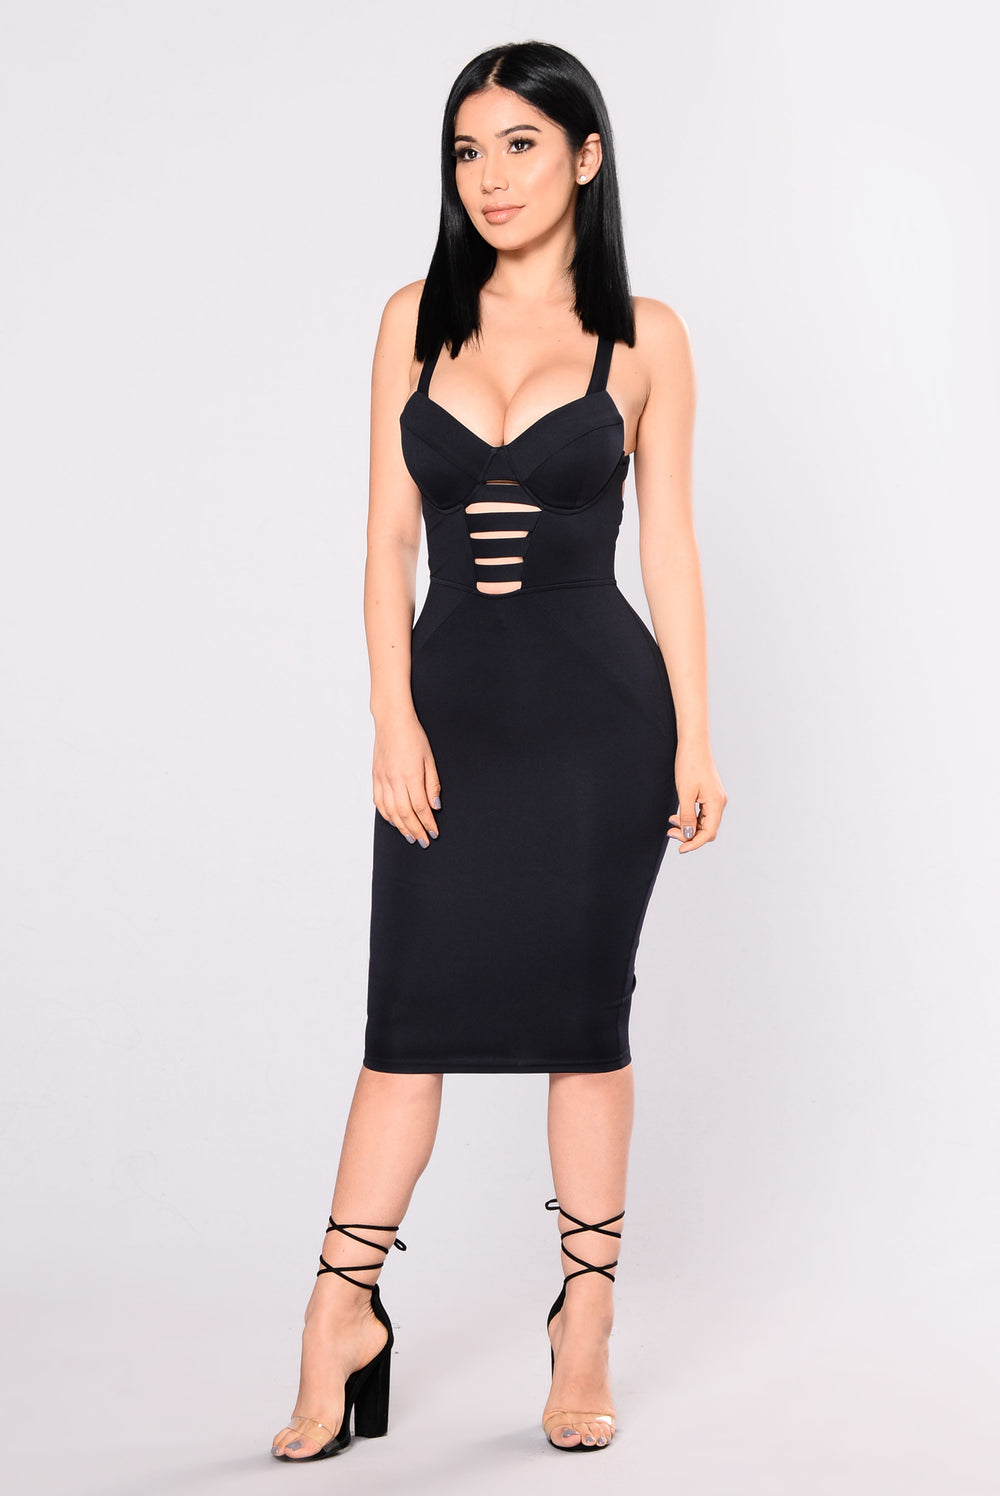 Nothing But Good Dress - Navy